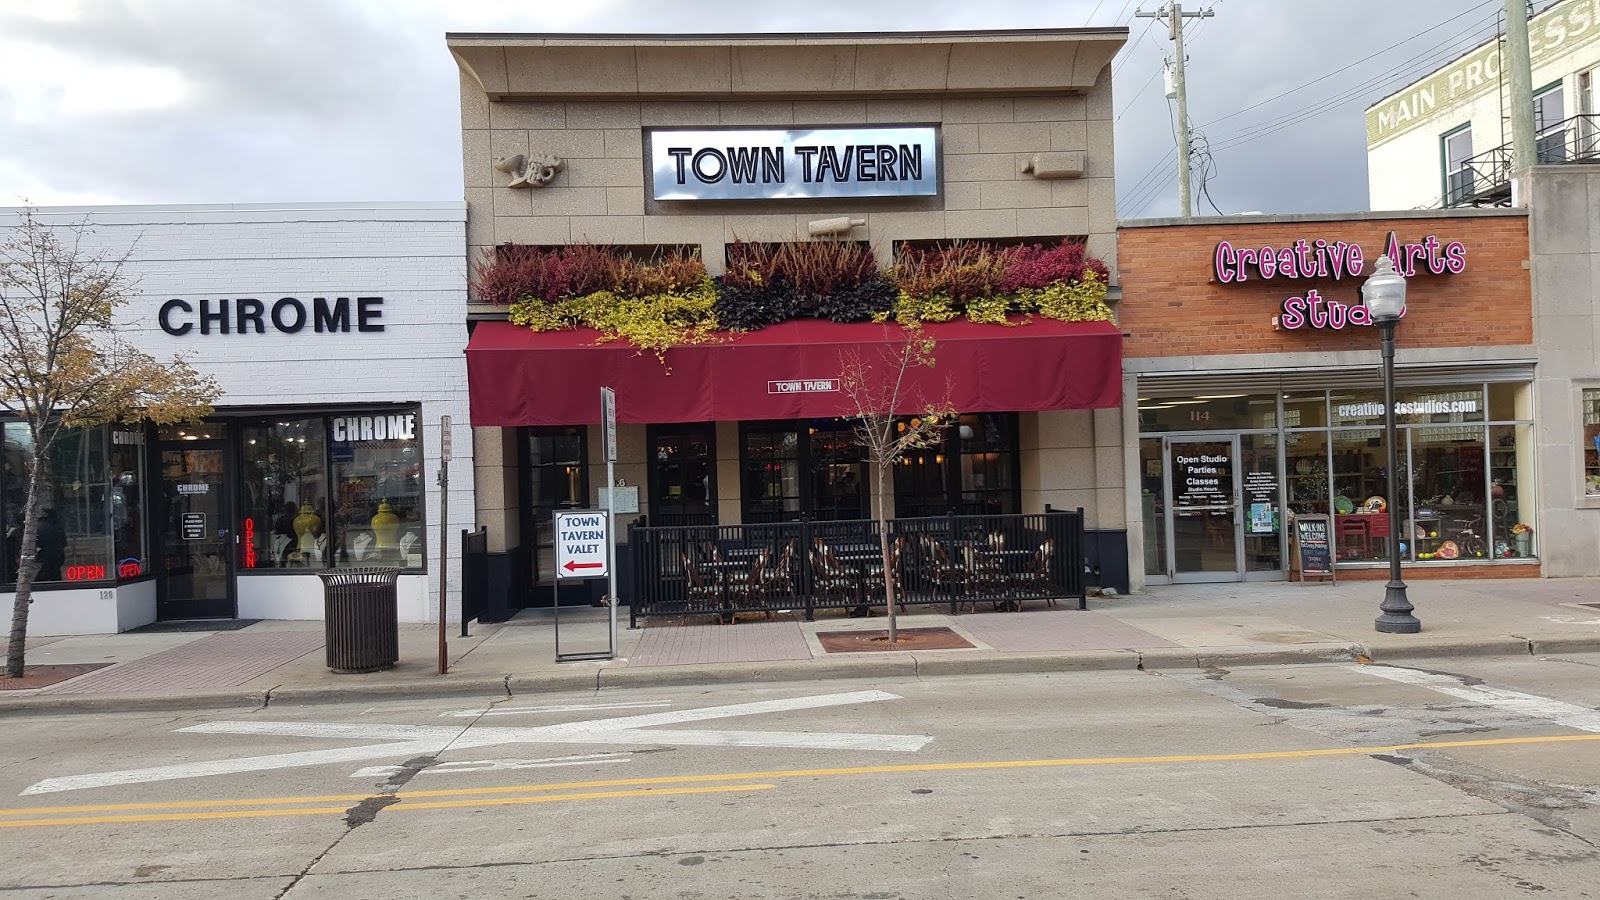 Town Tavern in Royal Oak, Michigan